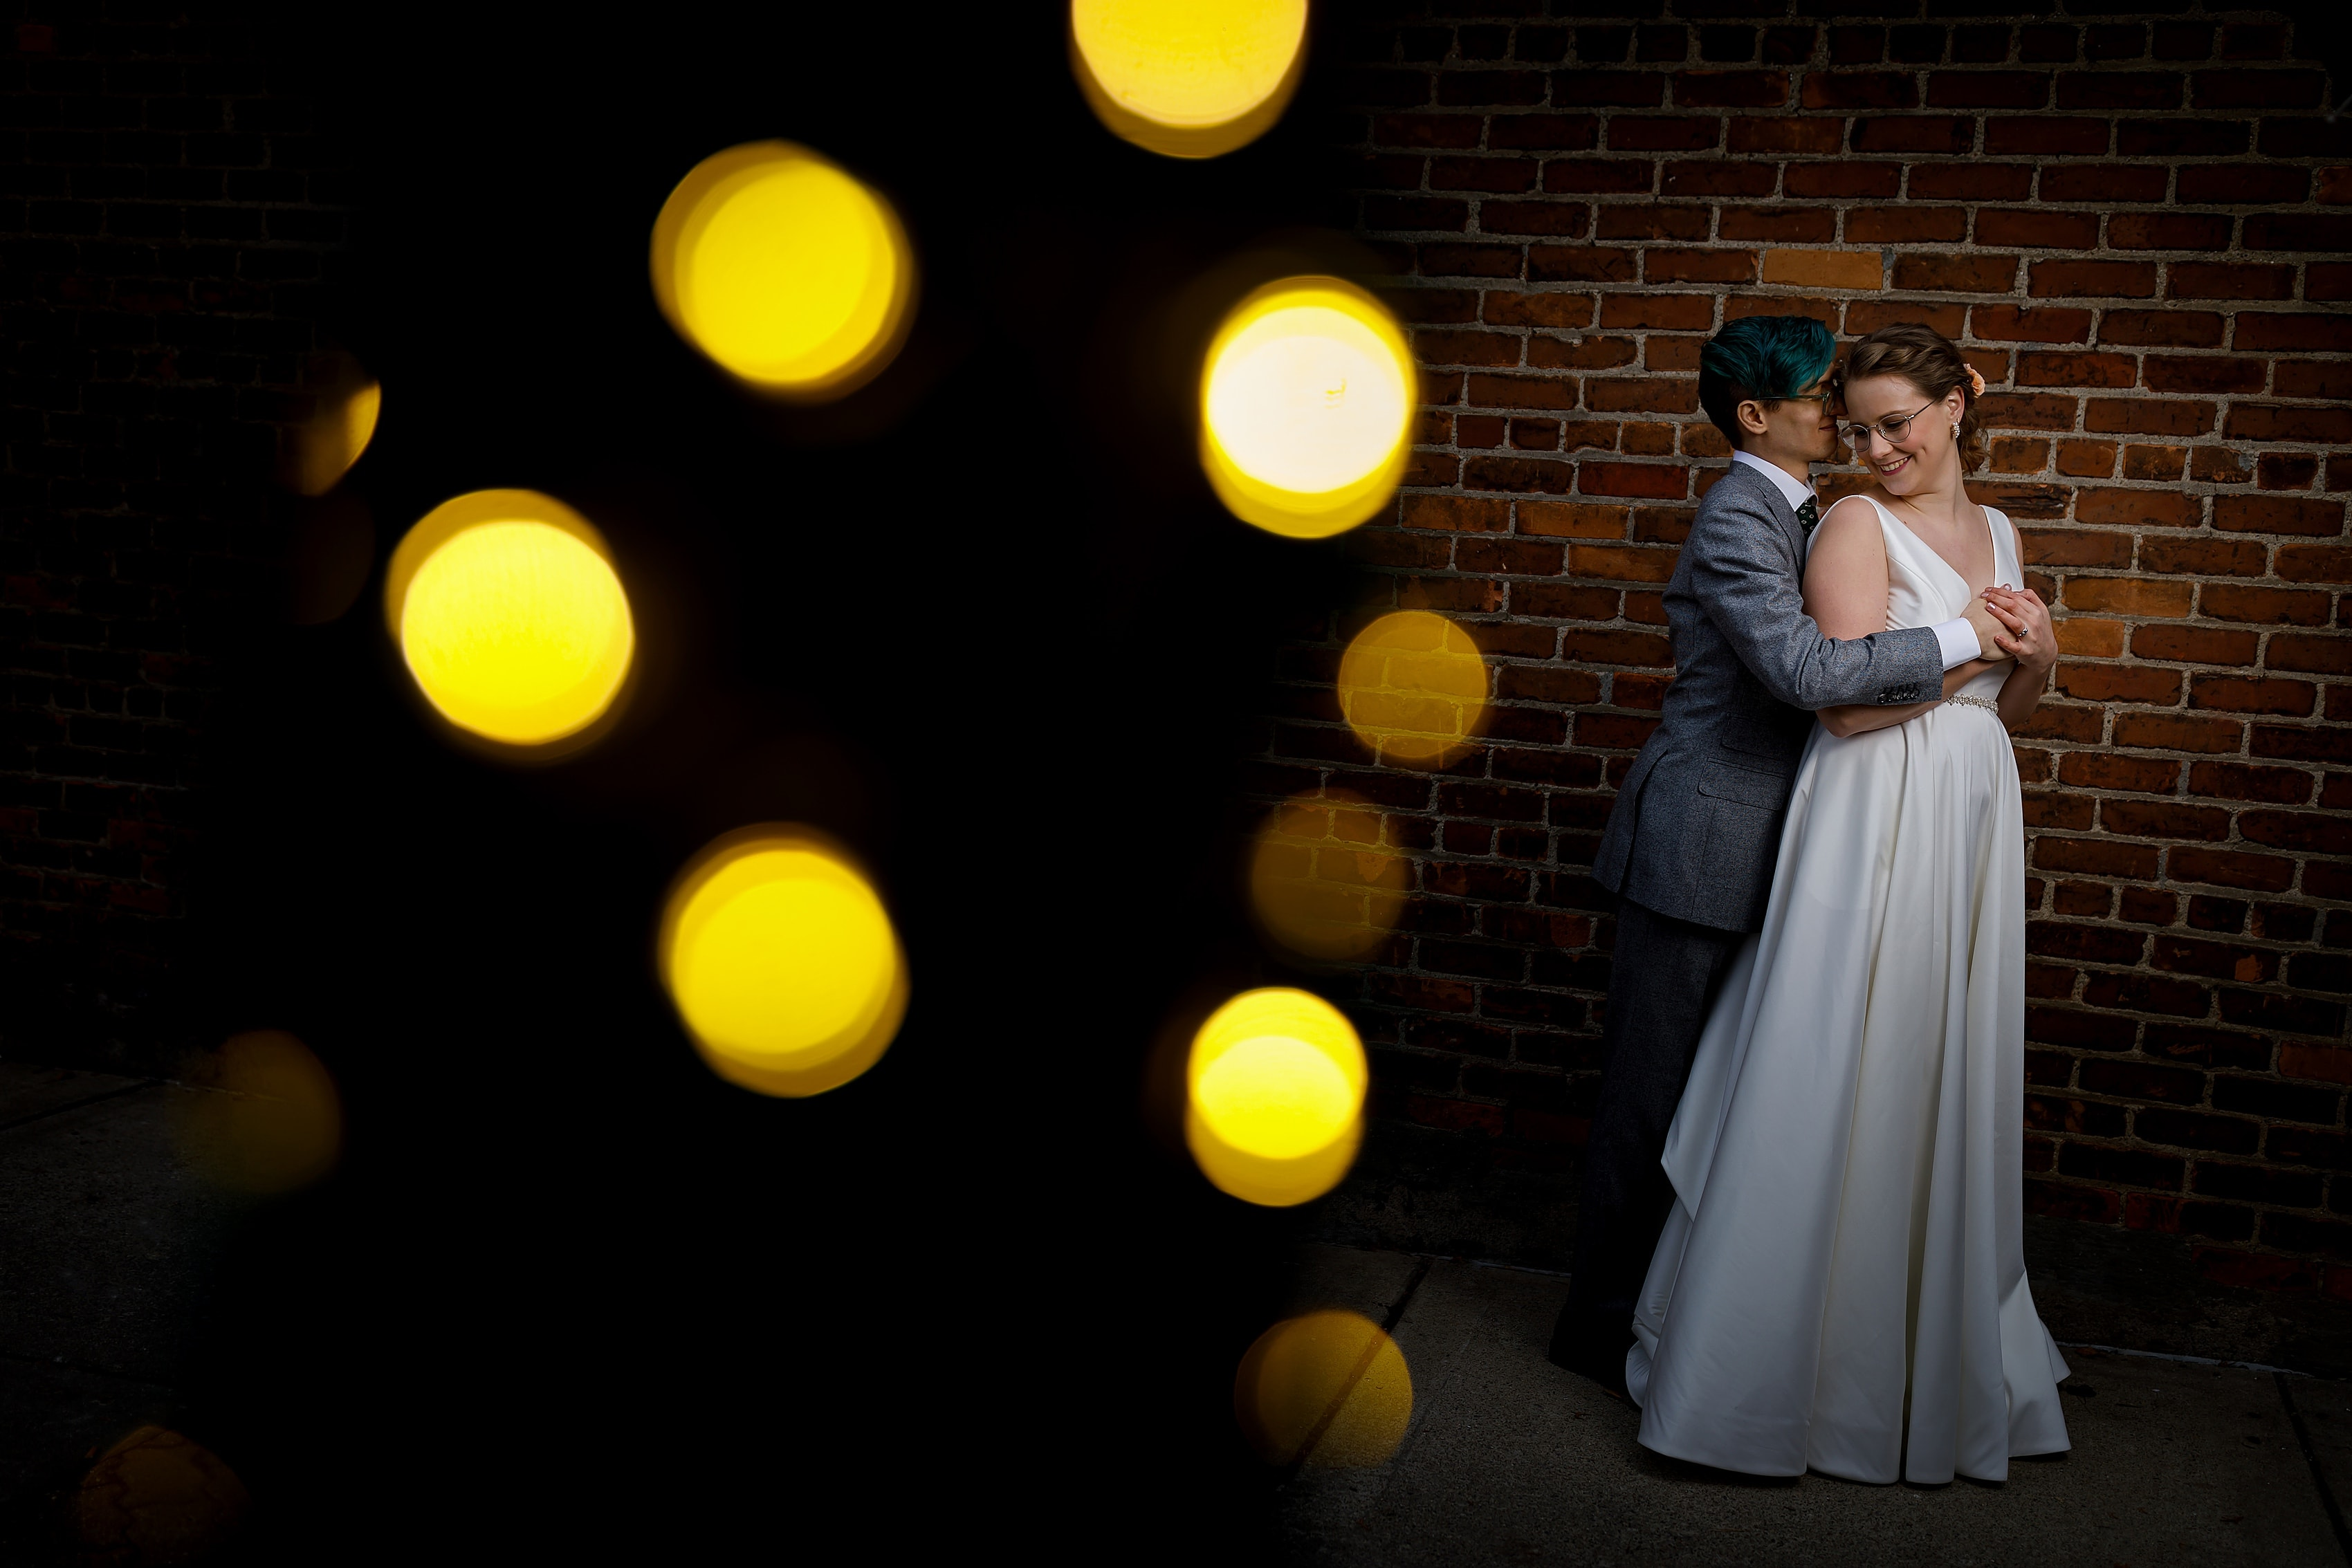 bride and groom portrait in downtown Ferndale, Michigan on brick wall